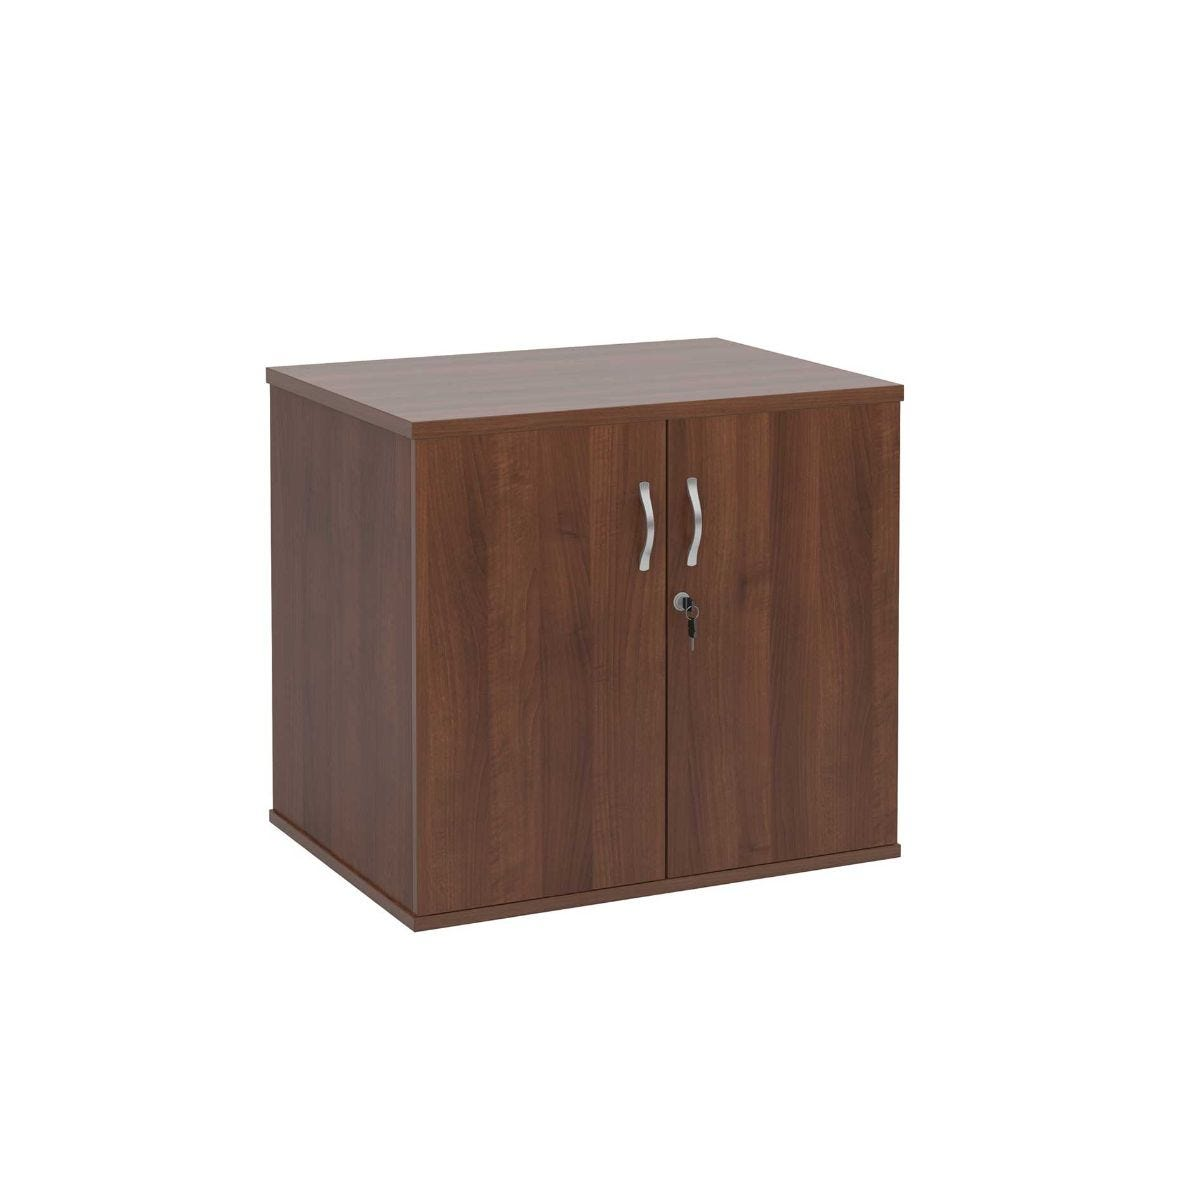 Desk High Cupboard with Doors, Walnut